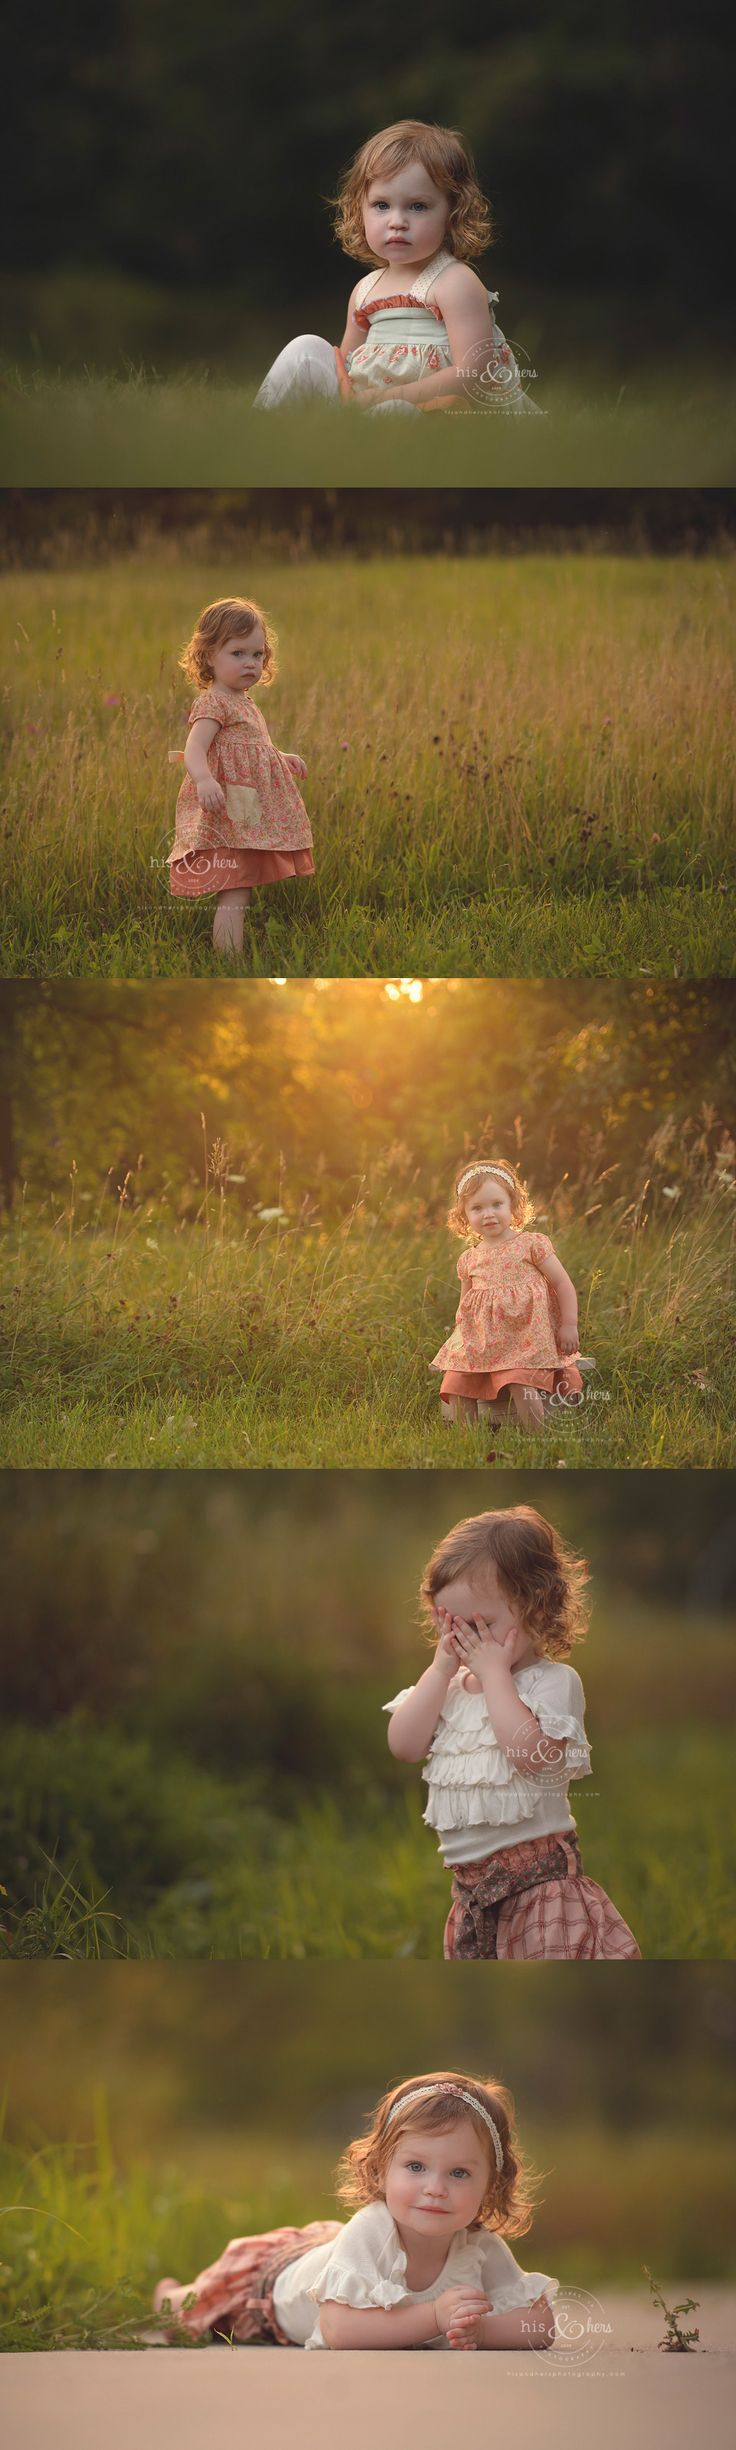 2 year old portrait session, Finley | Des Moines, Iowa child photographer, Darcy…